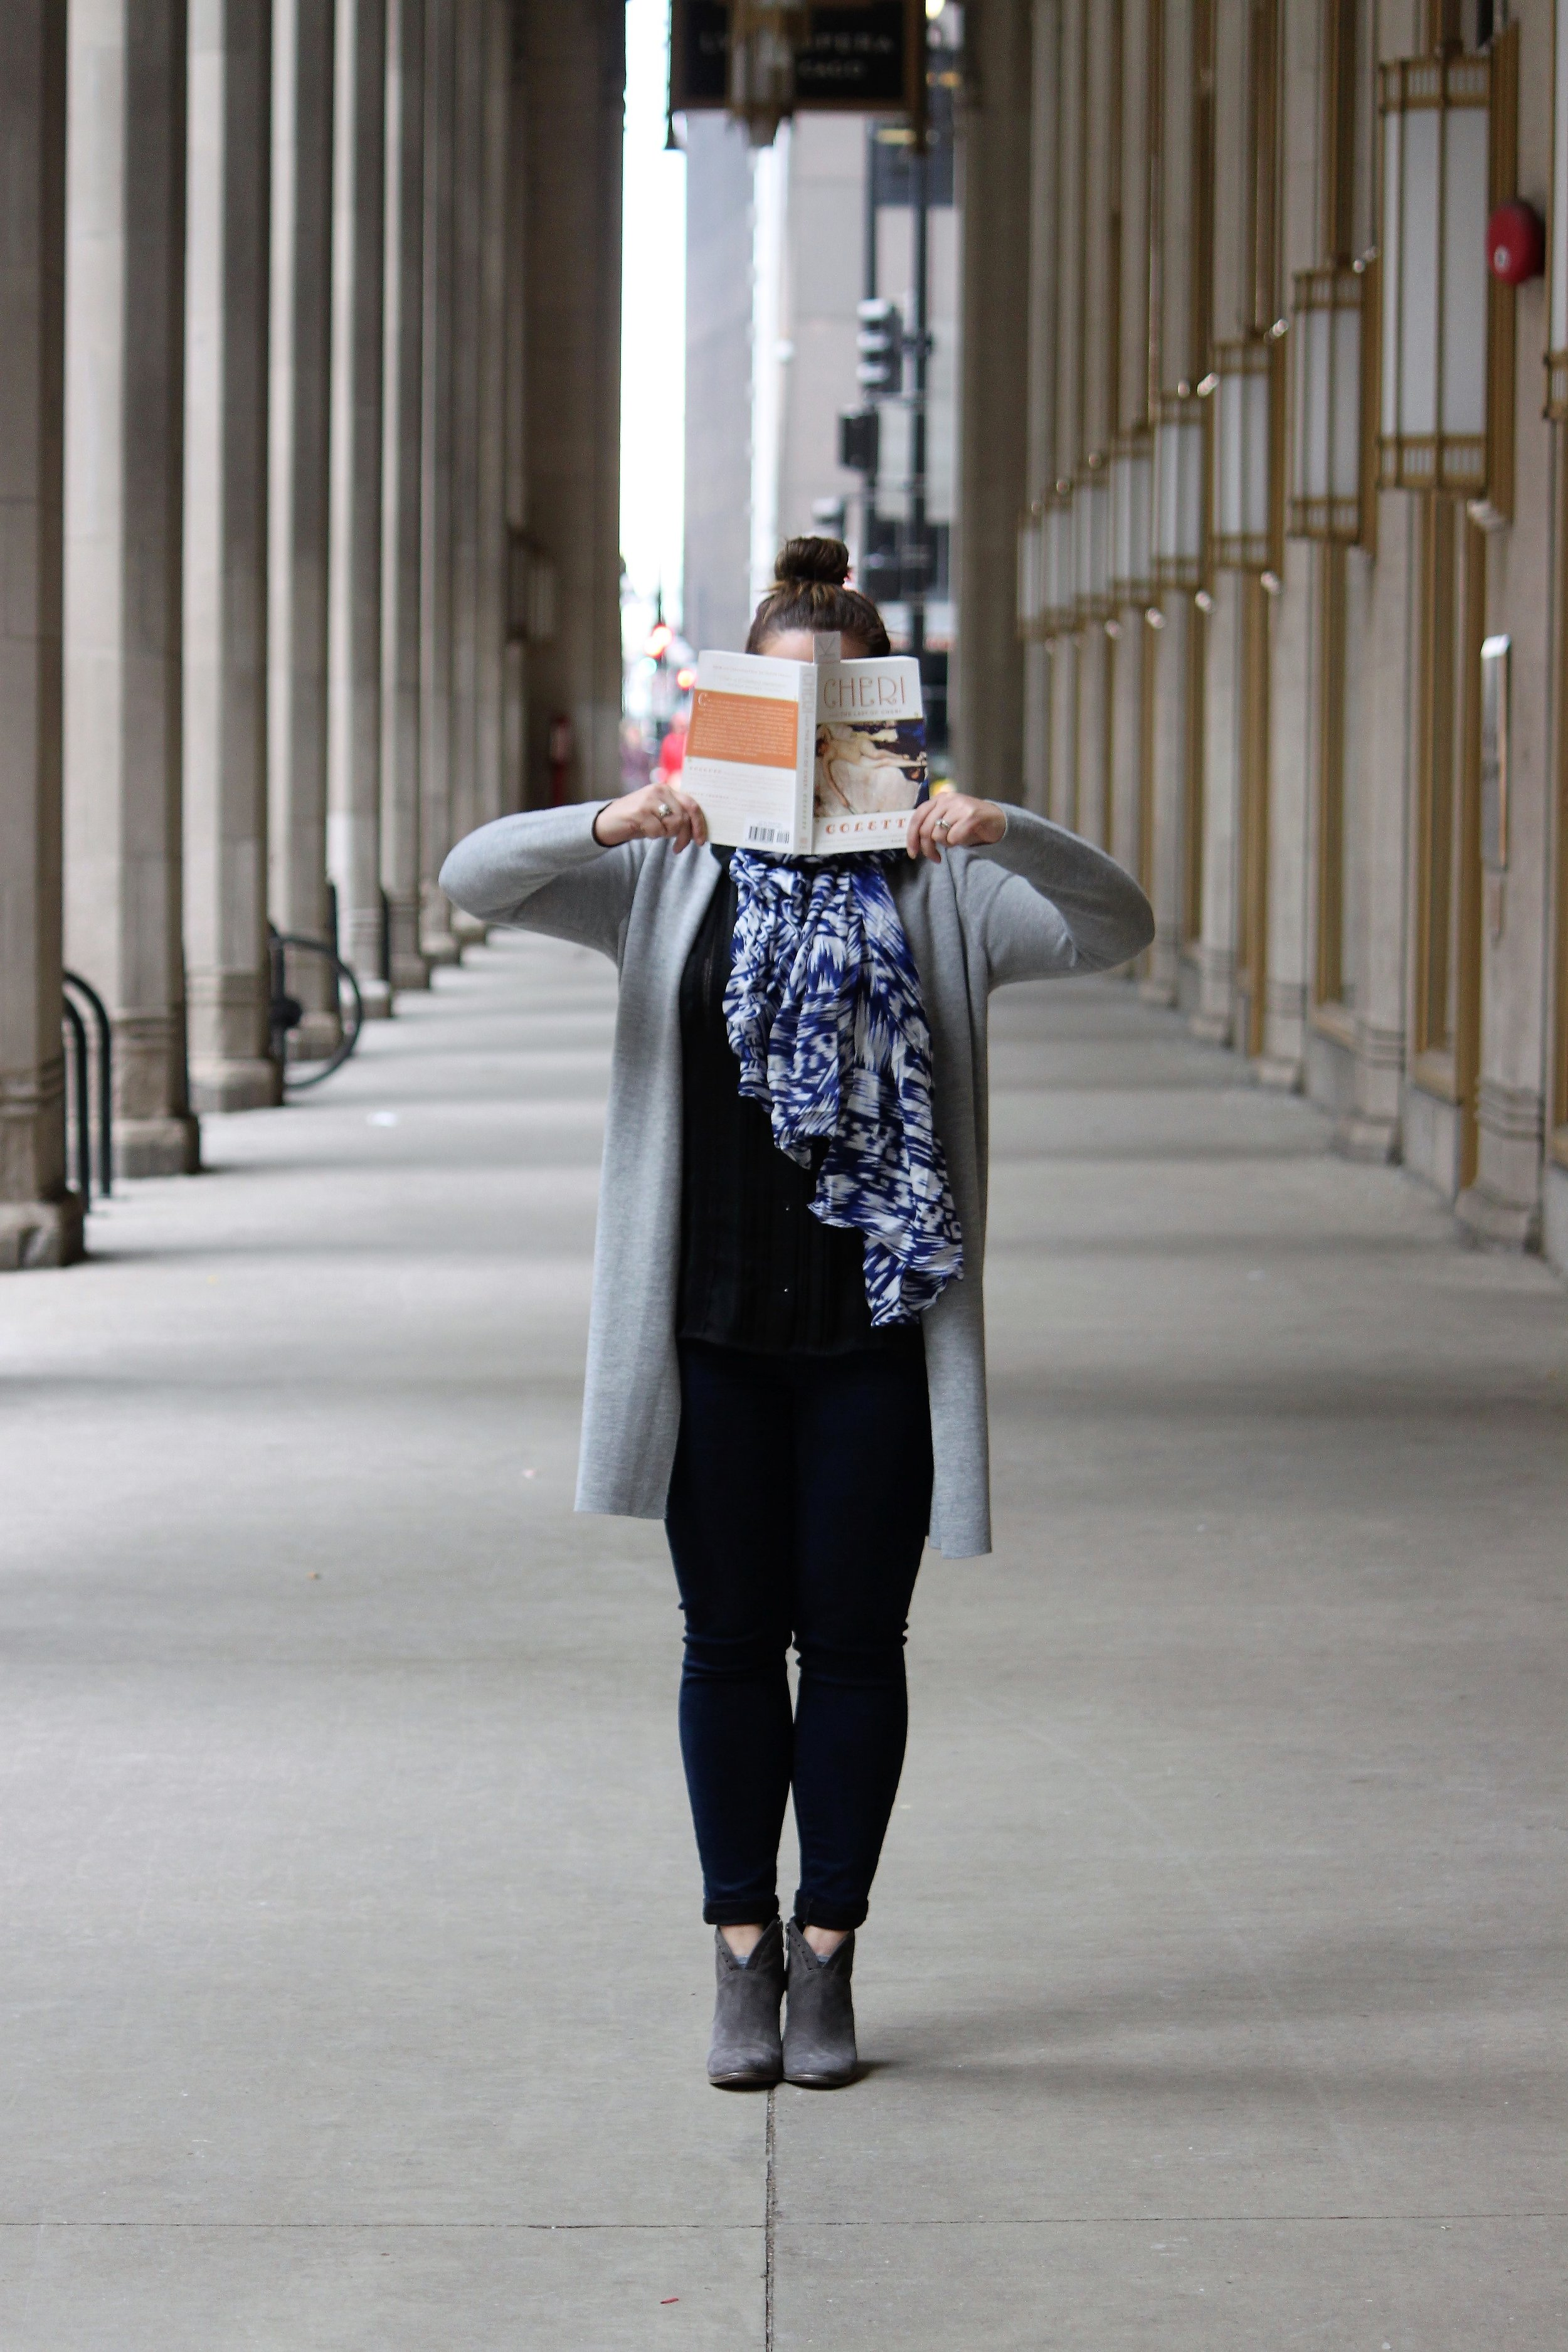 Reading Cheri and The Last of Cheri by Colette at the Civic Opera House in Chicago, IL